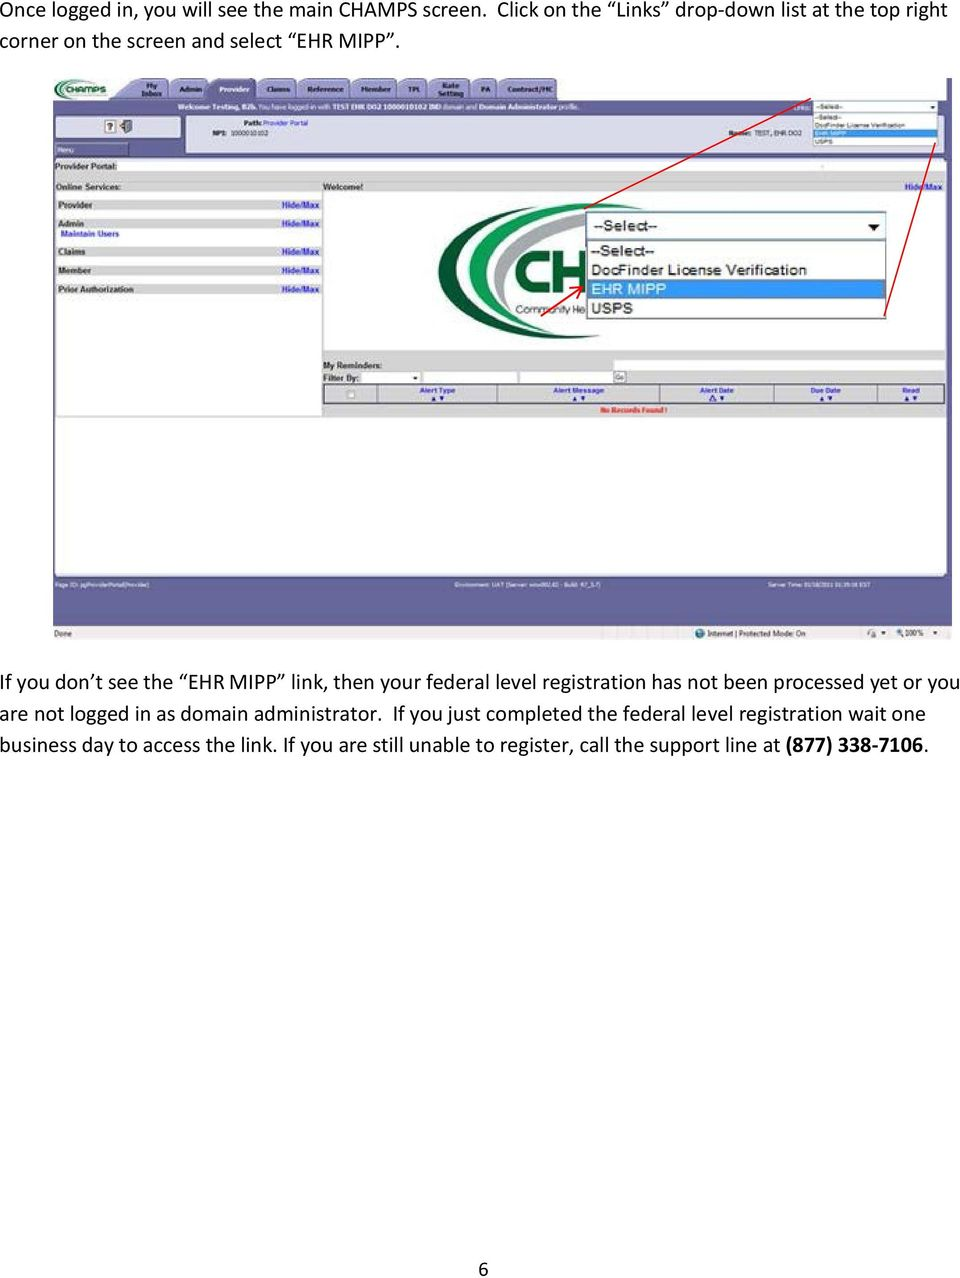 If you don t see the EHR MIPP link, then your federal level registration has not been processed yet or you are not